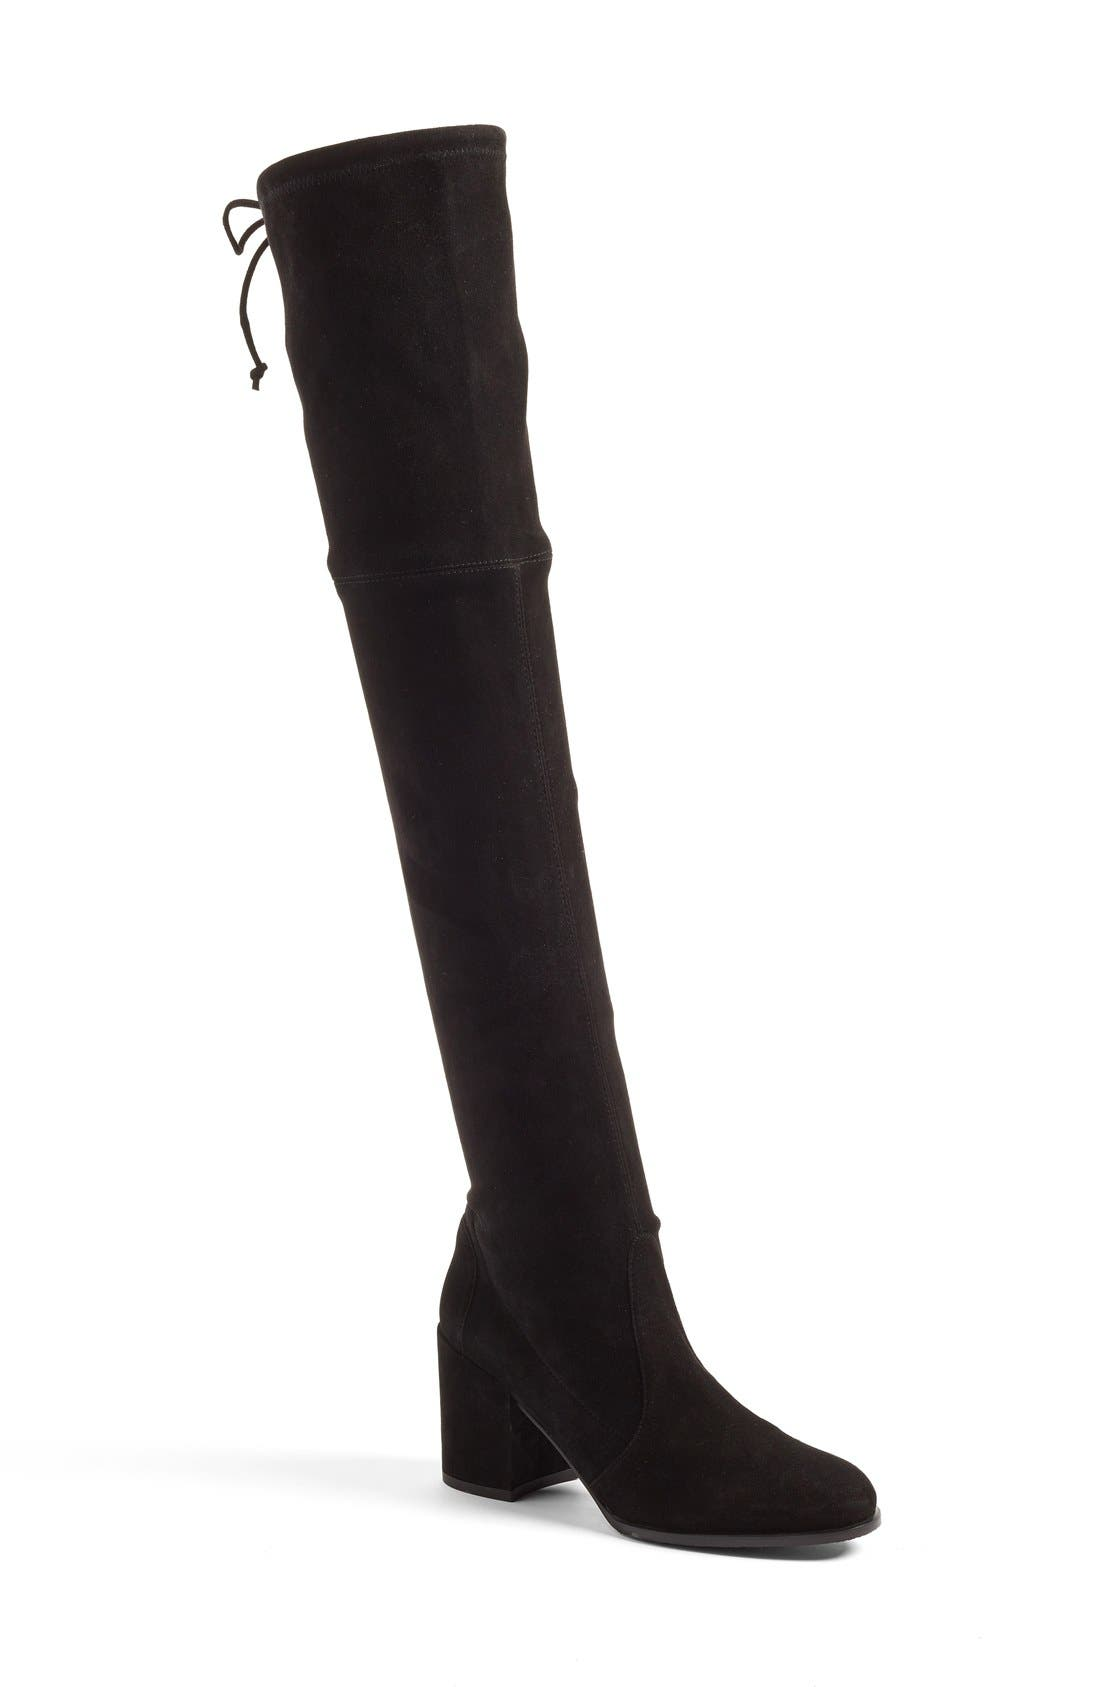 Tieland Over The Knee Boot by Stuart Weitzman